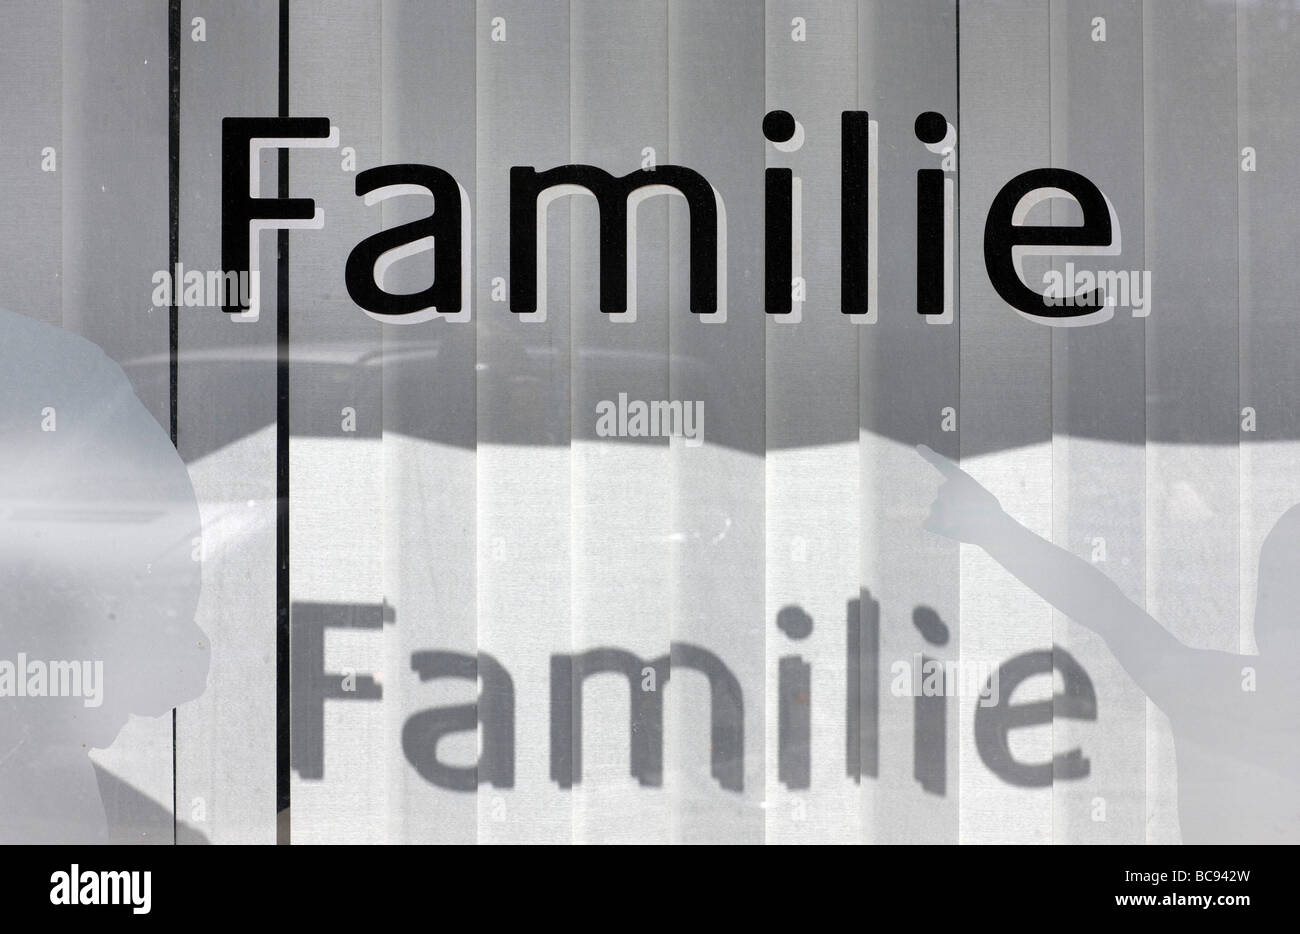 Familie Writing at a window - Stock Image